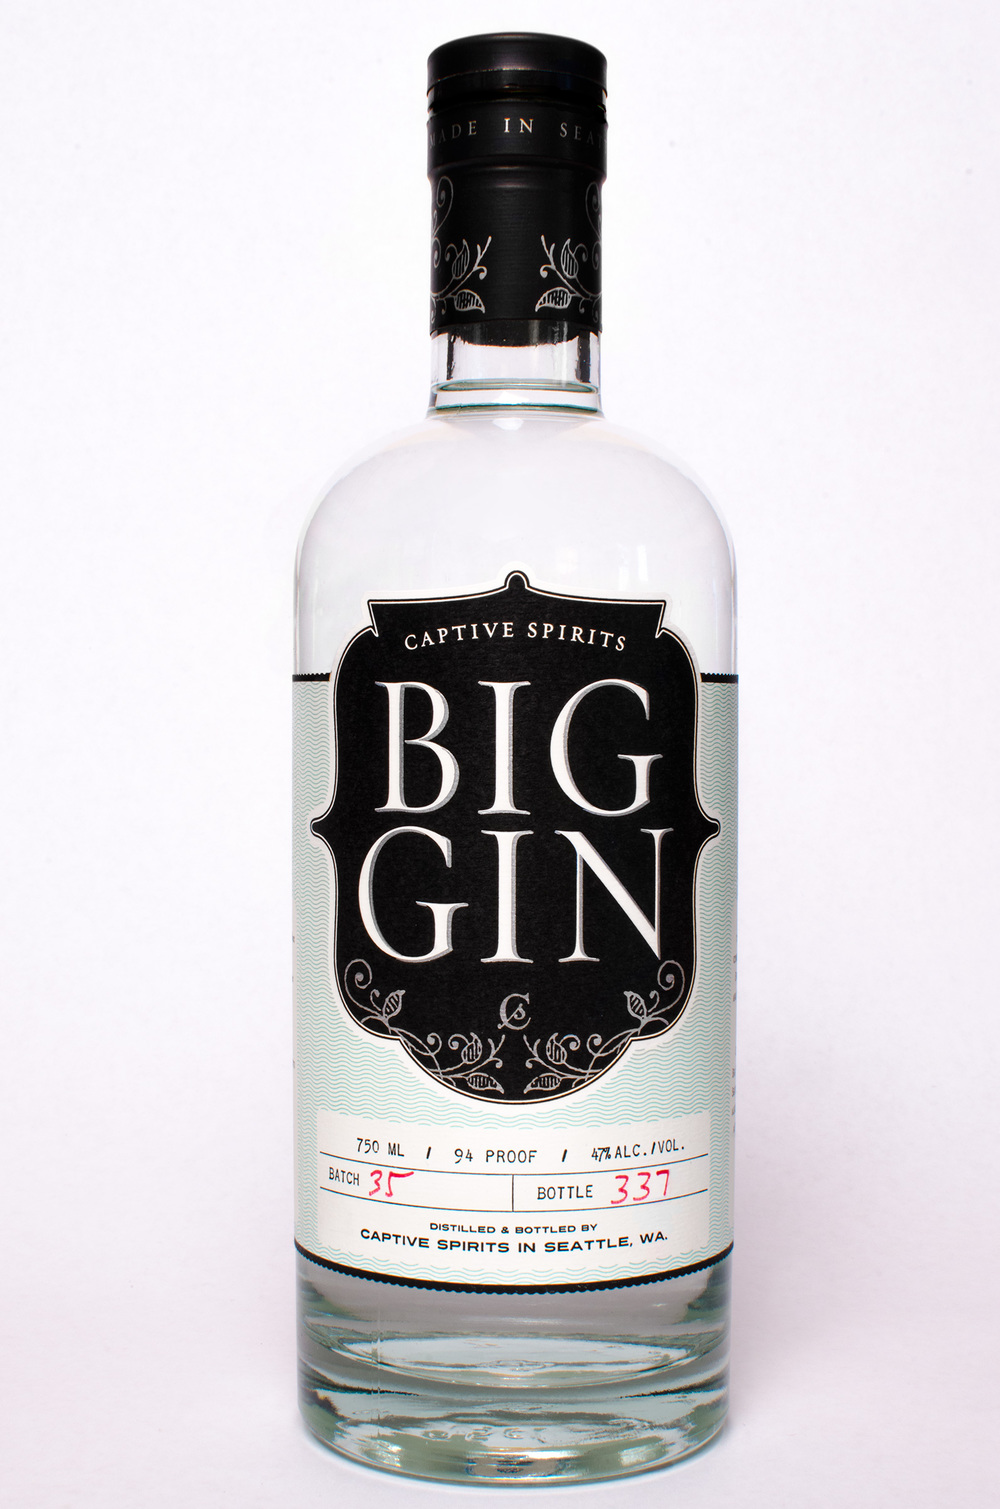 Big-Gin-Bottle-2-Small.jpg